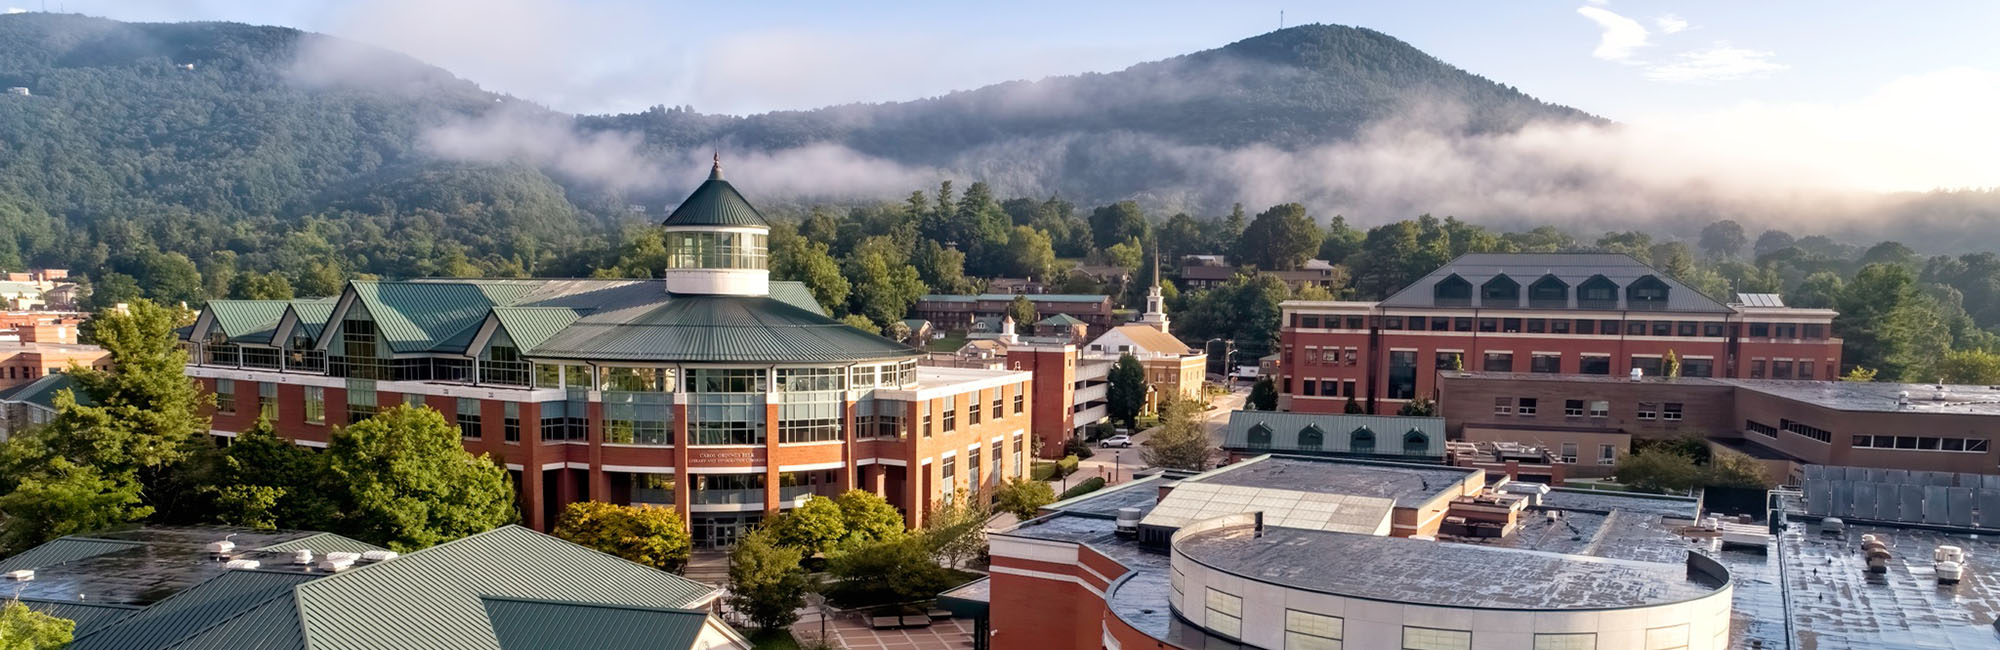 Students put their trust in App State during pandemic: Landmark enrollment of 20,641 students, record high number of underrepresented students